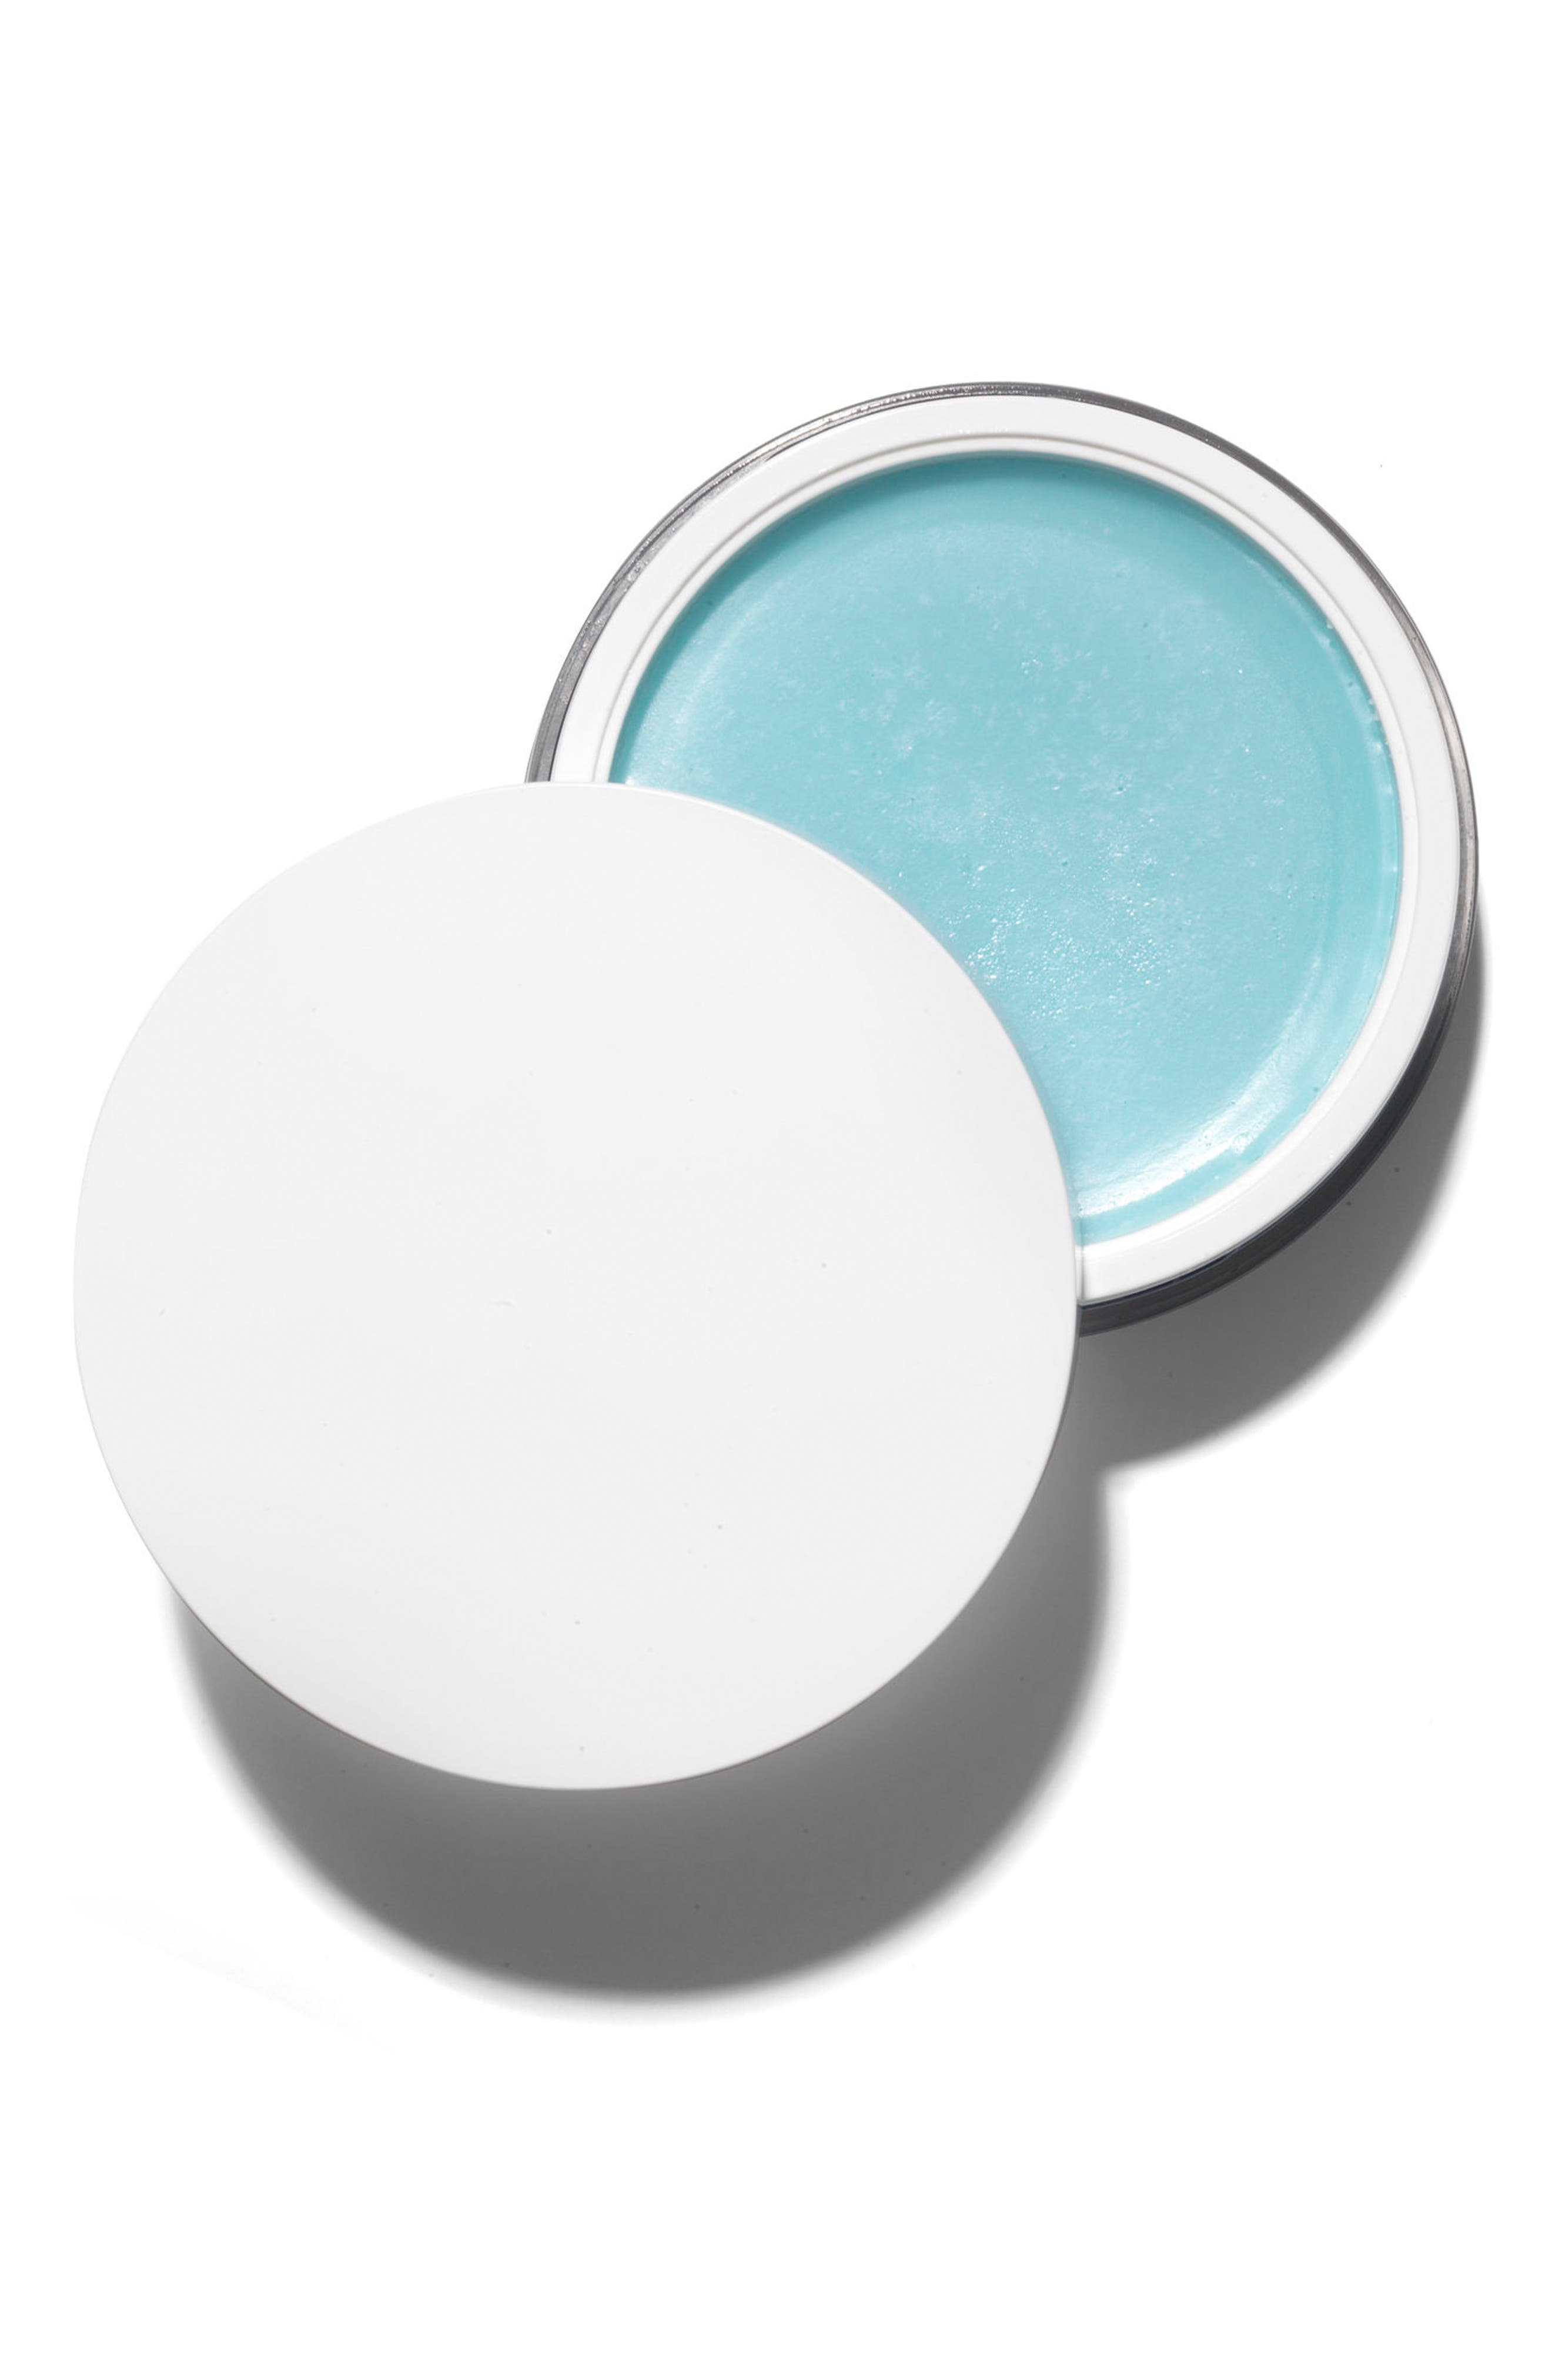 SUNDAY RILEY, SPACE.NK.apothecary Sunday Riley Blue Moon Tranquility Cleansing Balm, Alternate thumbnail 2, color, NO COLOR